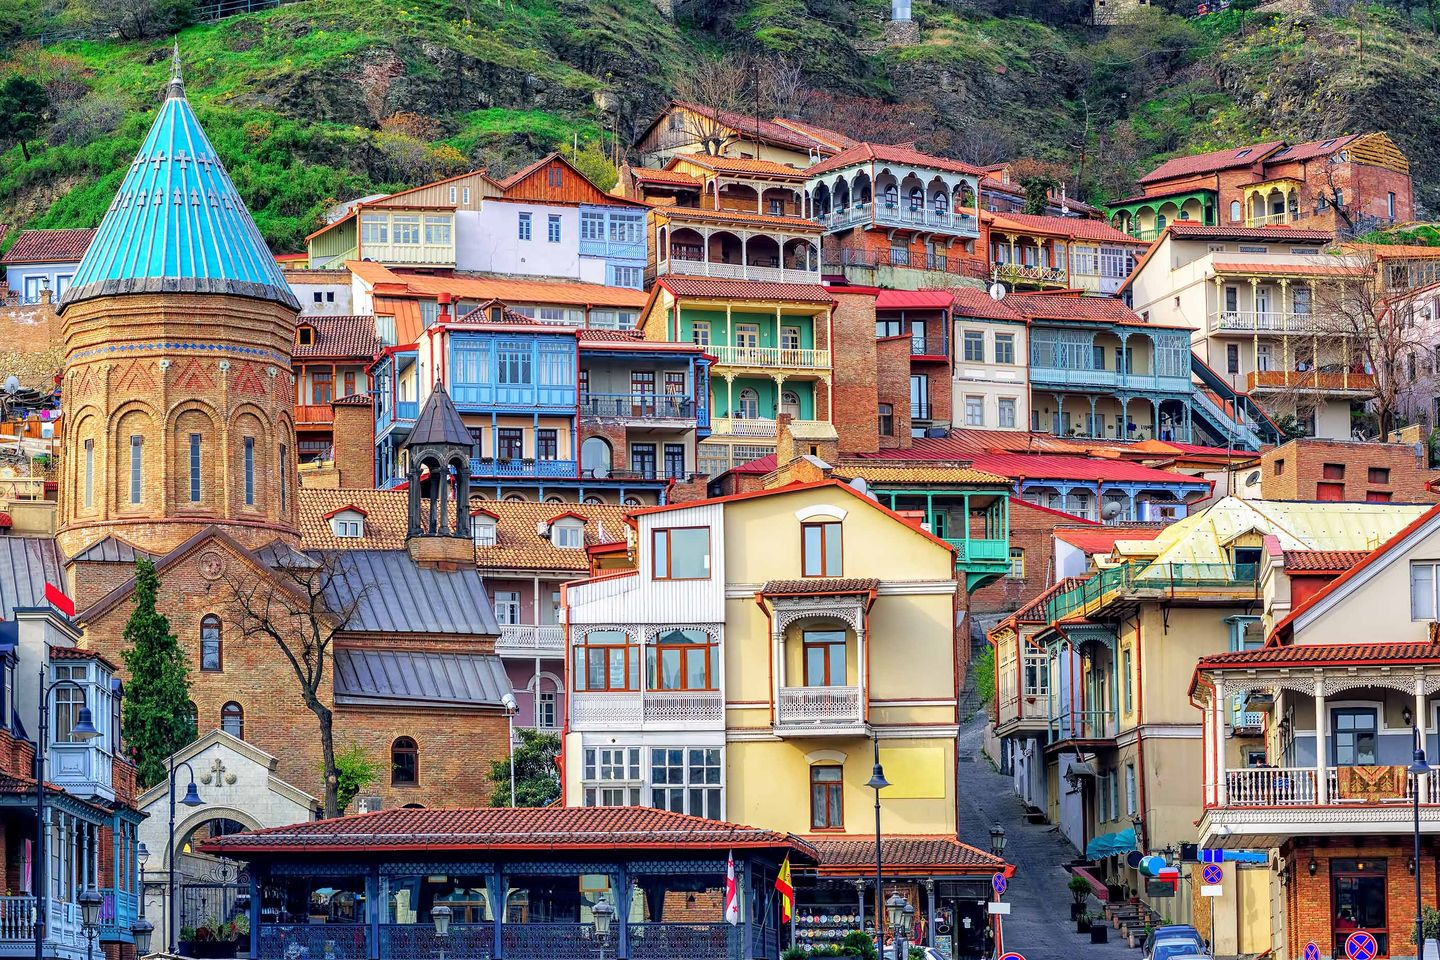 Tbilisi's quirky Old Town (Shutterstock)